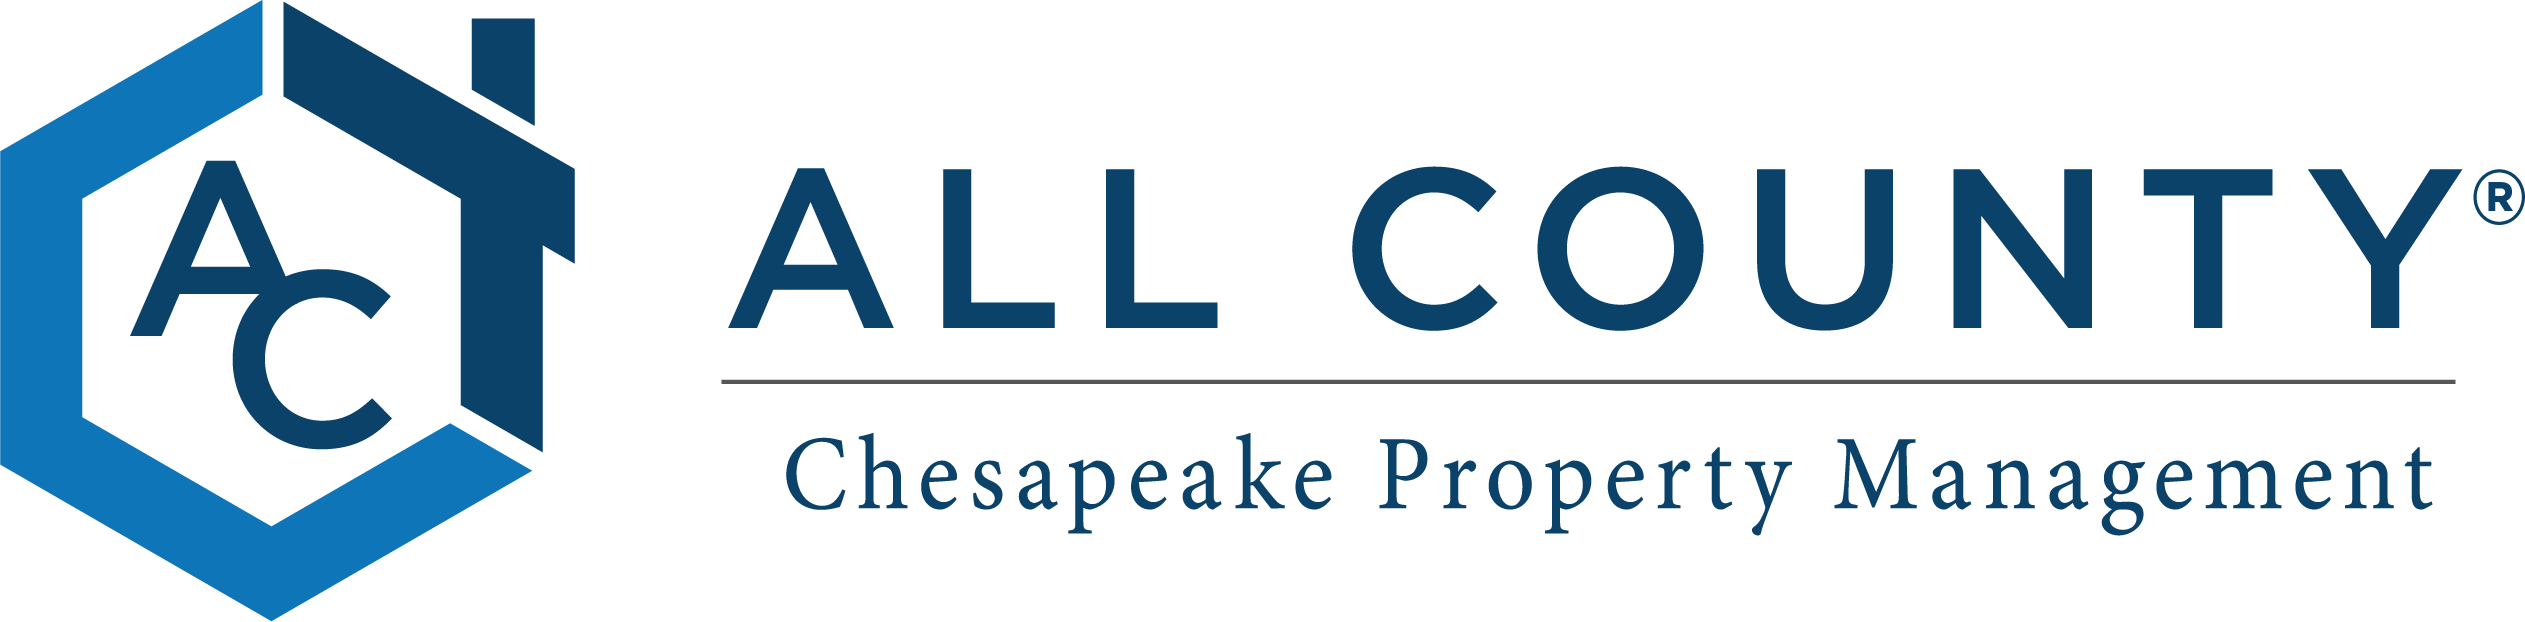 All County Chesapeake Property Management